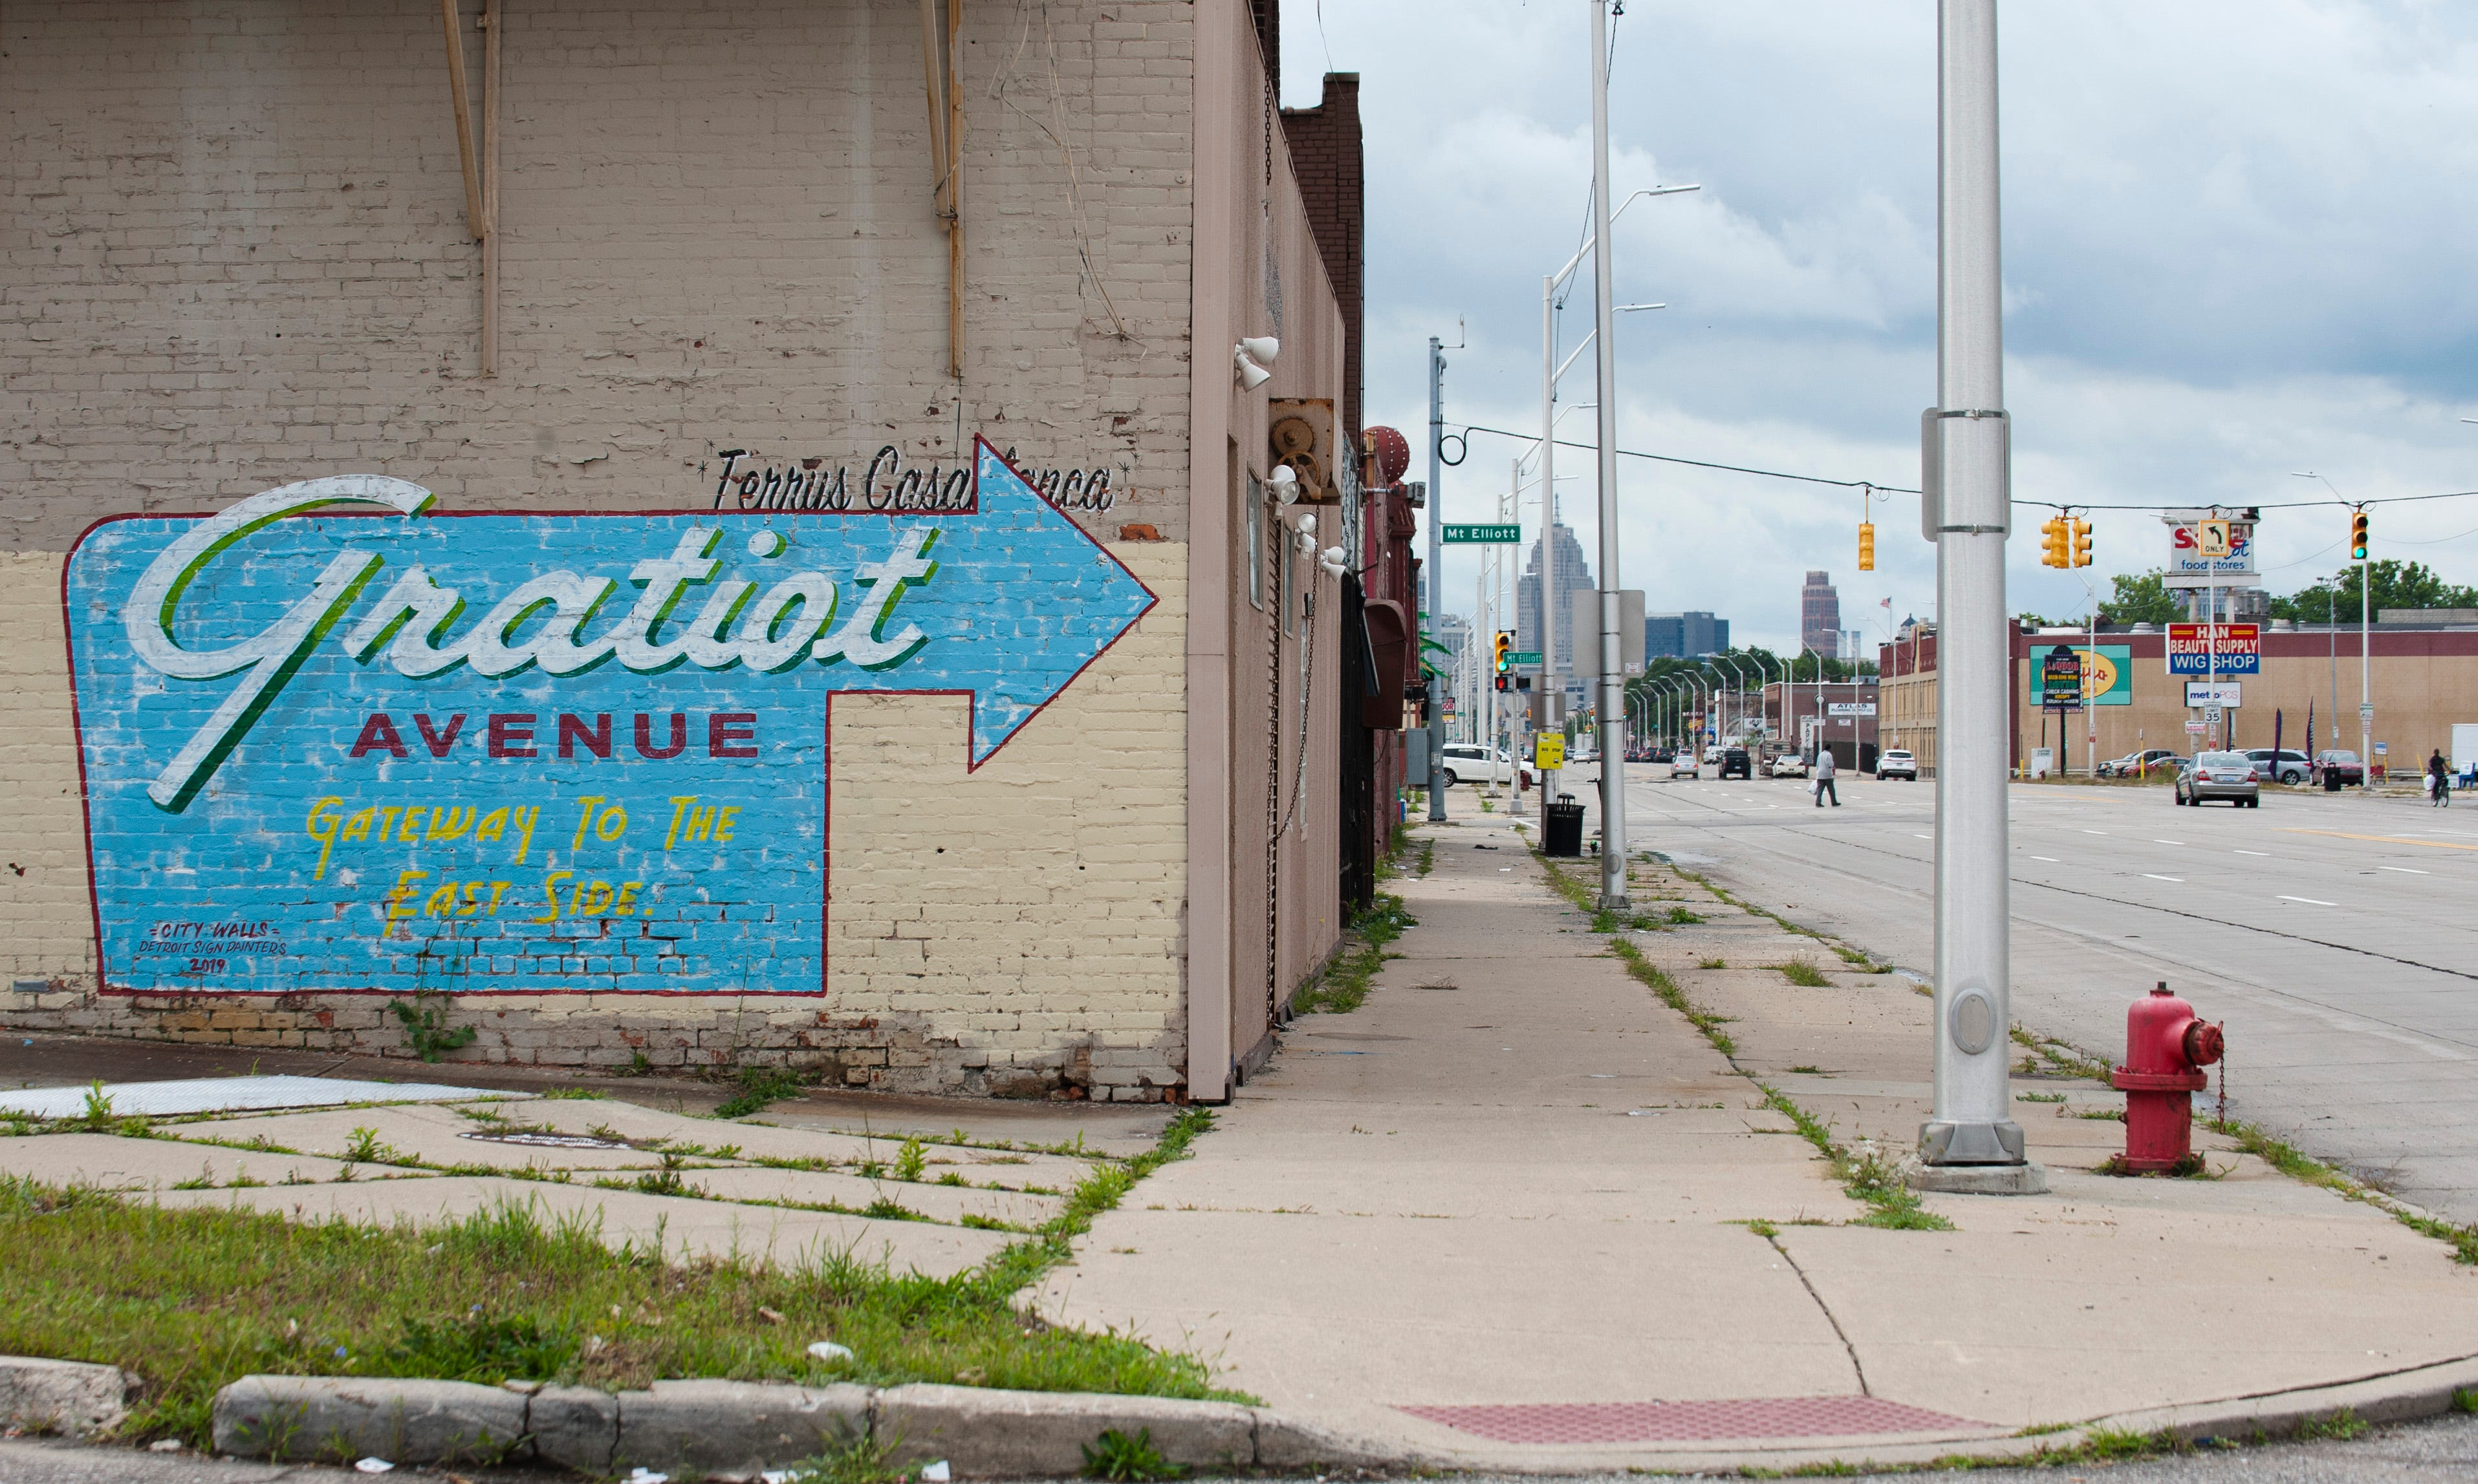 'It gets really bad after dark': Crime persists on Gratiot in Detroit